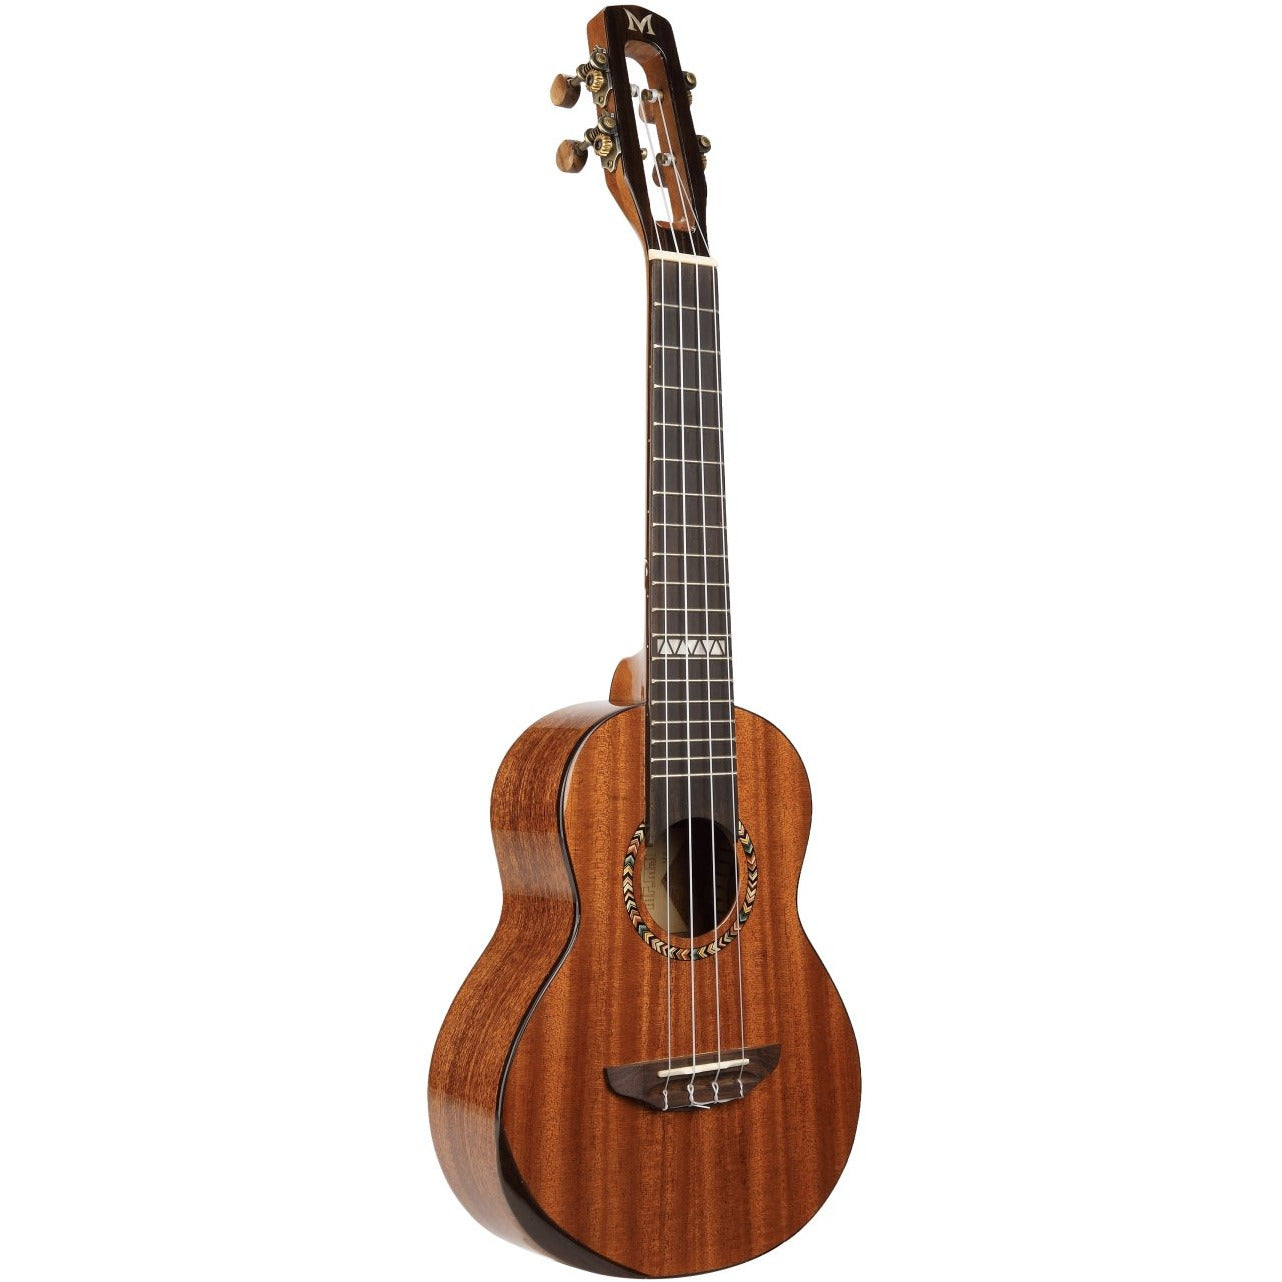 Mr Mai M-A80 All Solid Mahogany Concert Ukulele inc Hard Case - Freebirdmusic